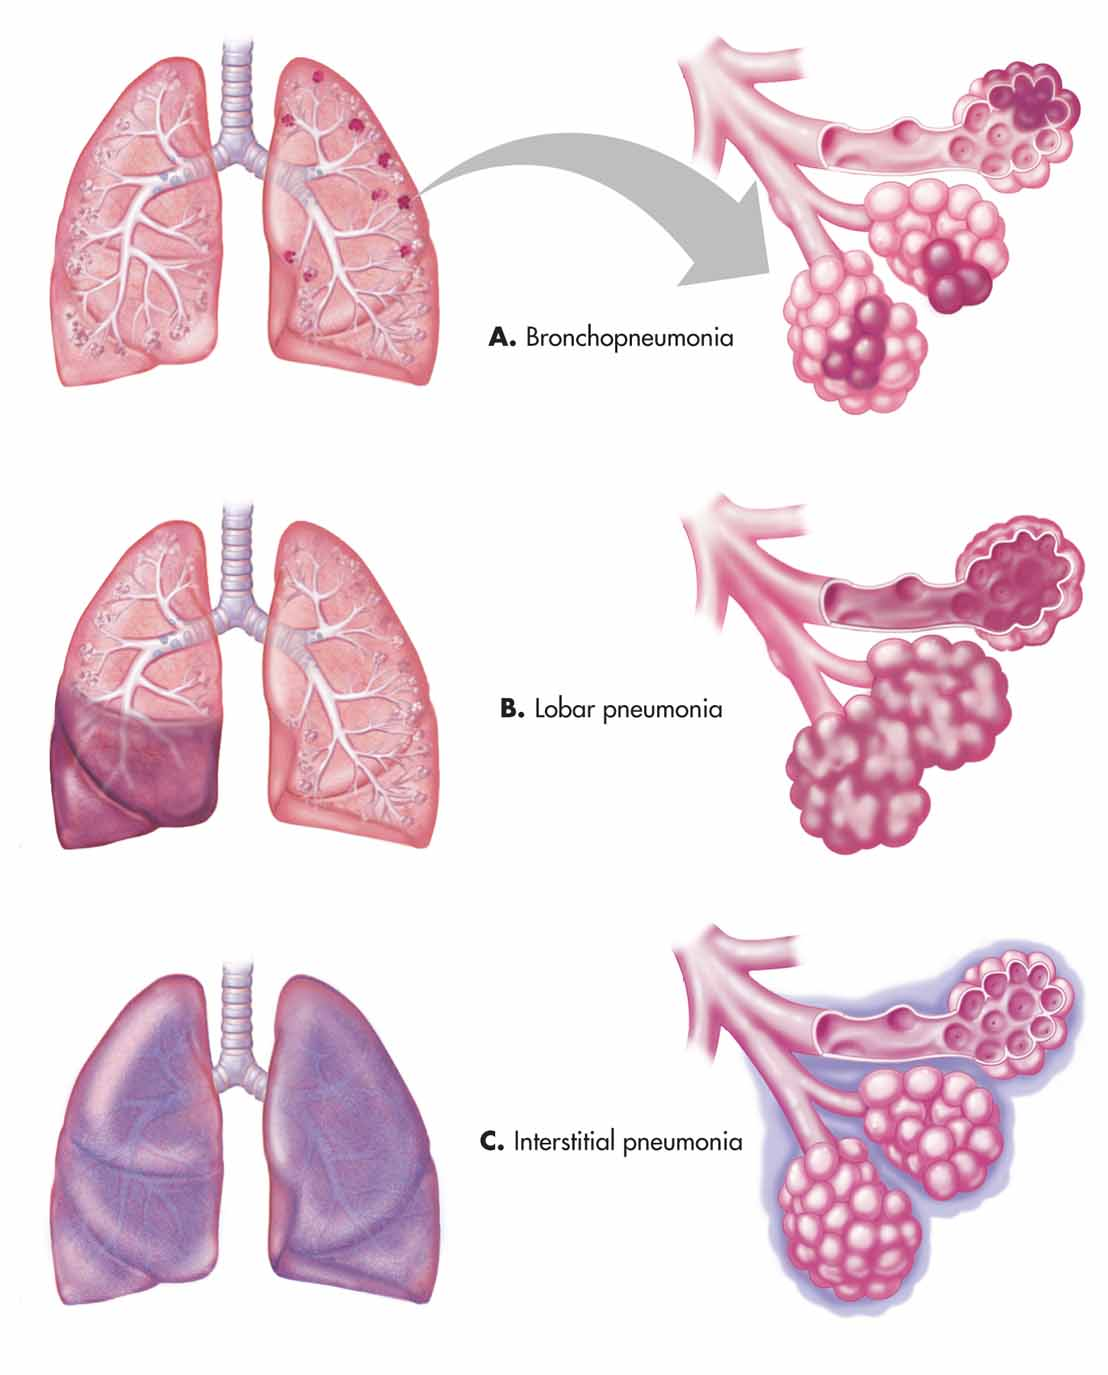 bronchopneumonia case study on Bronchopneumonia, also sometimes known as lobular pneumonia, is a radiological pattern associated with suppurative peribronchiolar inflammation and subsequent patchy consolidation of one or more secondary lobules of a lung in response to bacteria.